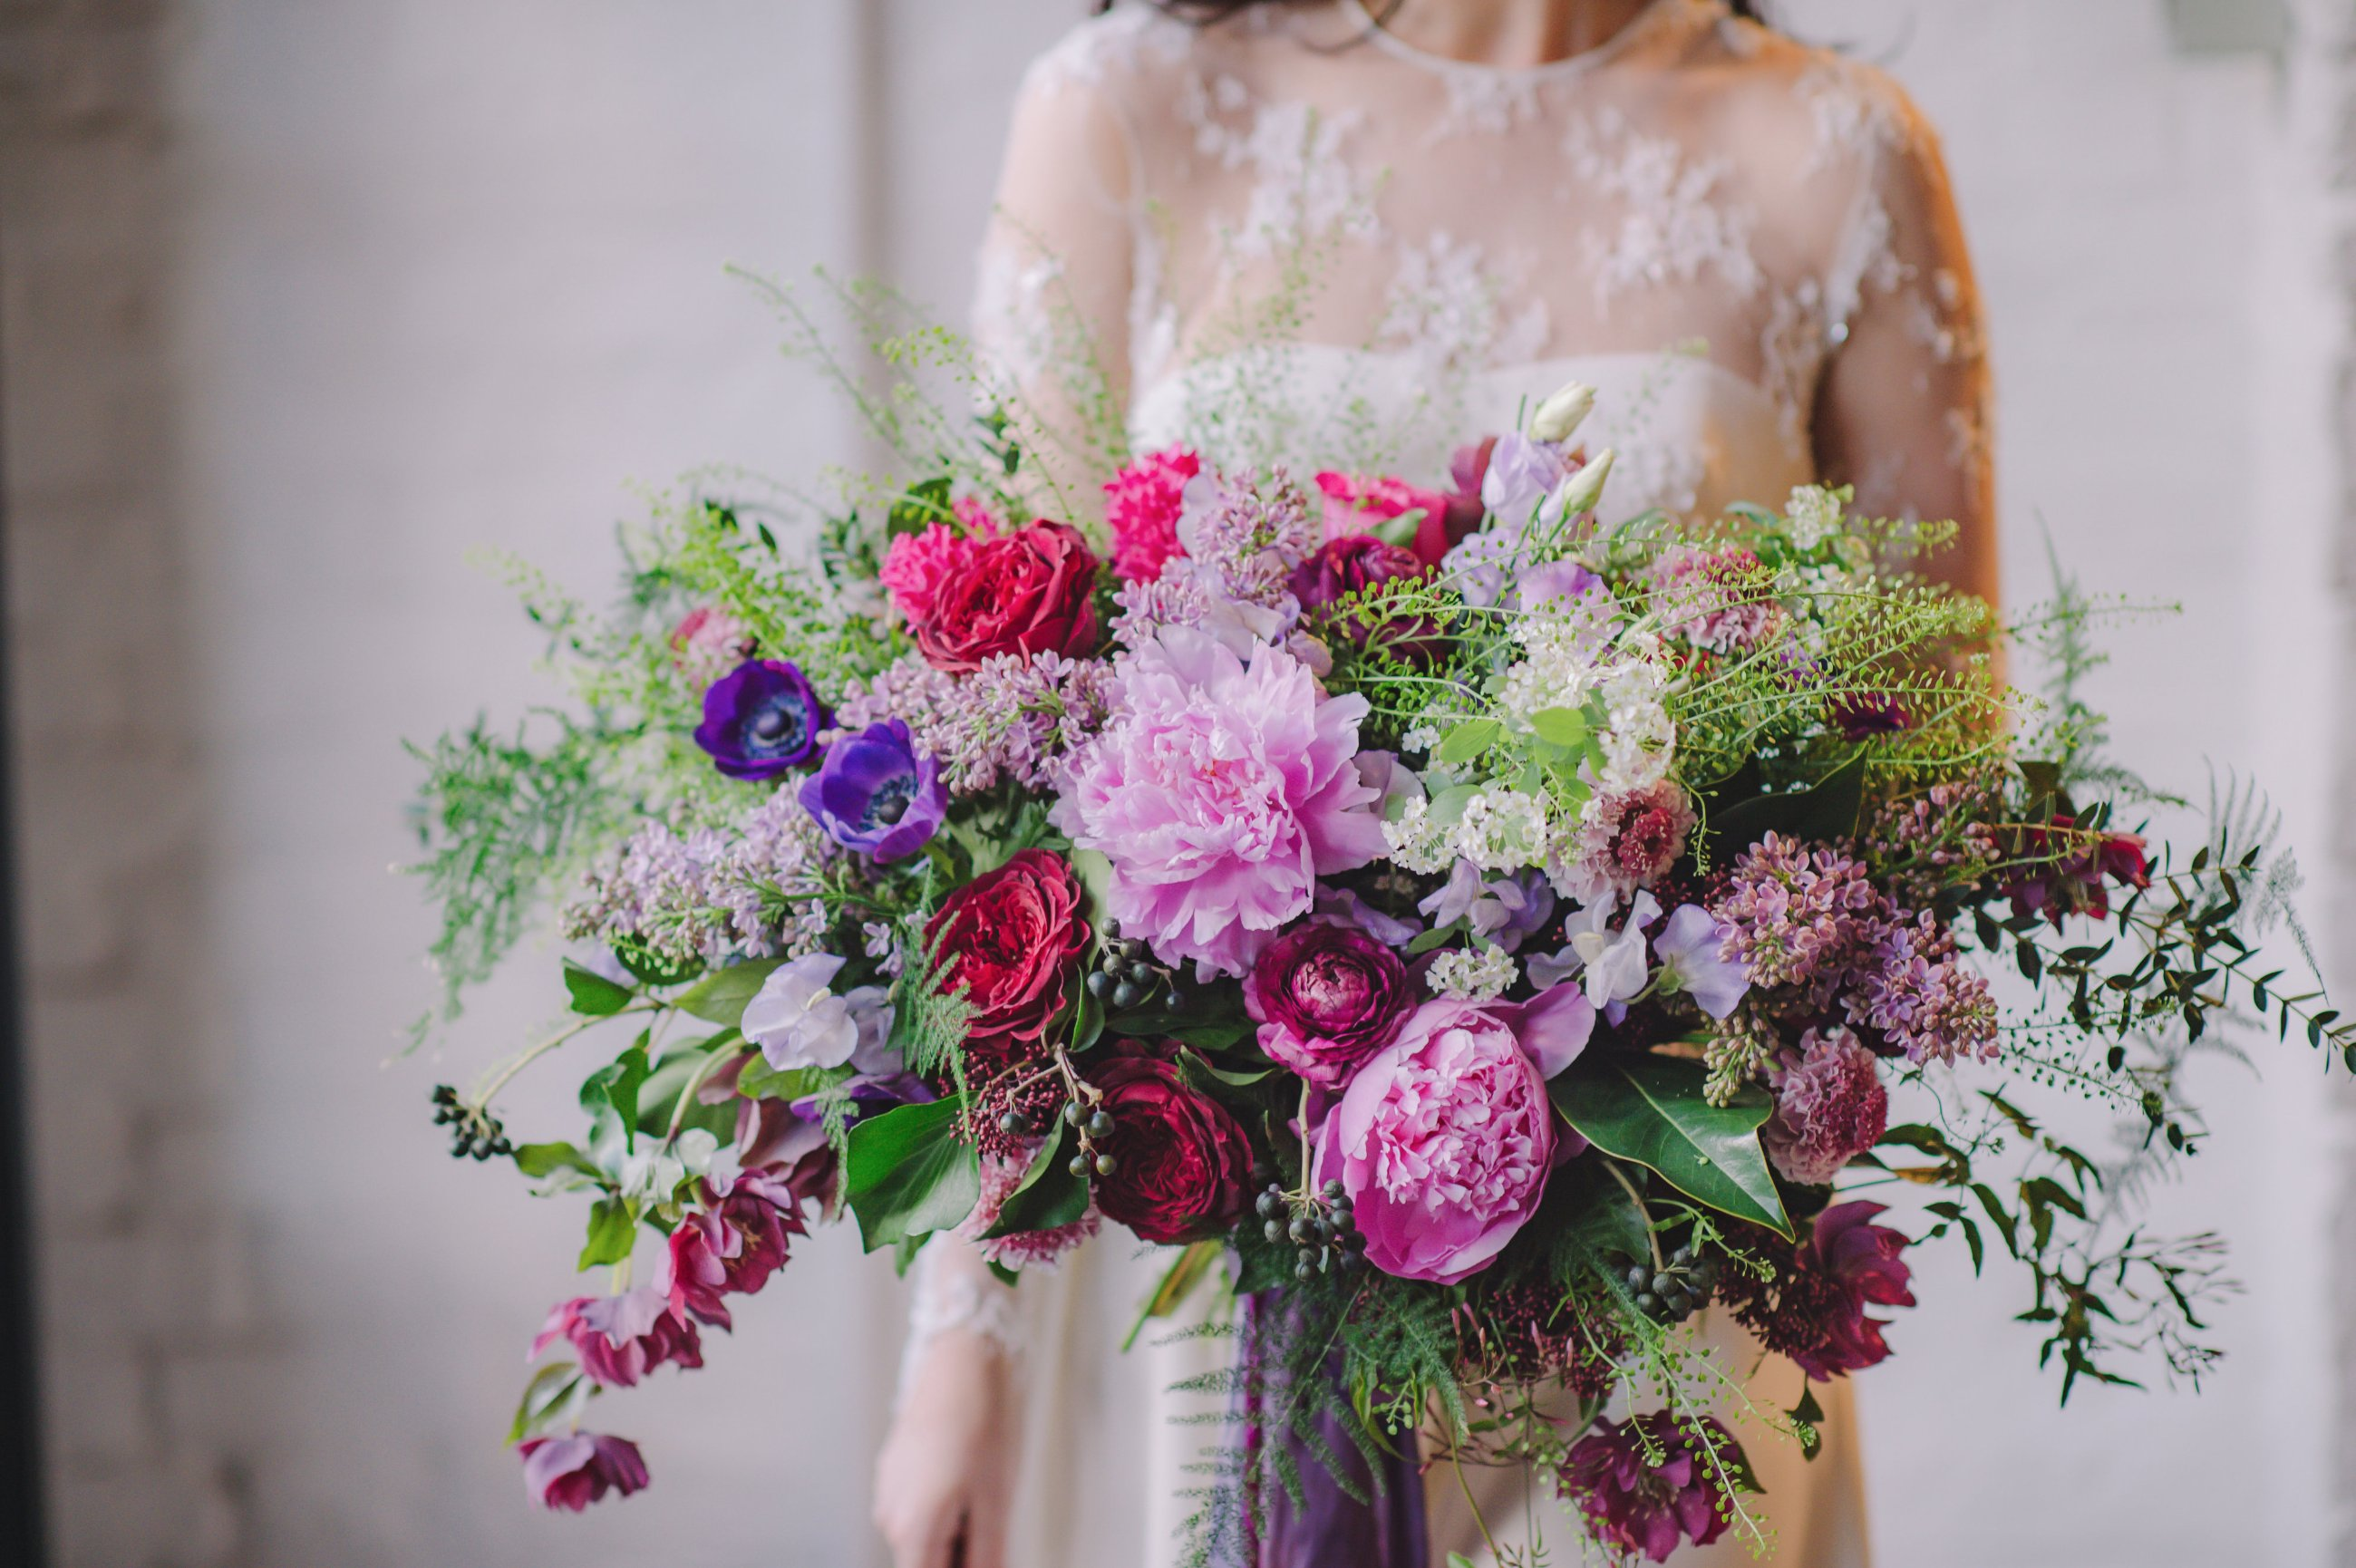 Free form a new style of bridal bouquet an oversized free form english garden style bouquet designed with anemones ranunculus peonies garden roses lilacs lisianthus flowering scabiosa izmirmasajfo